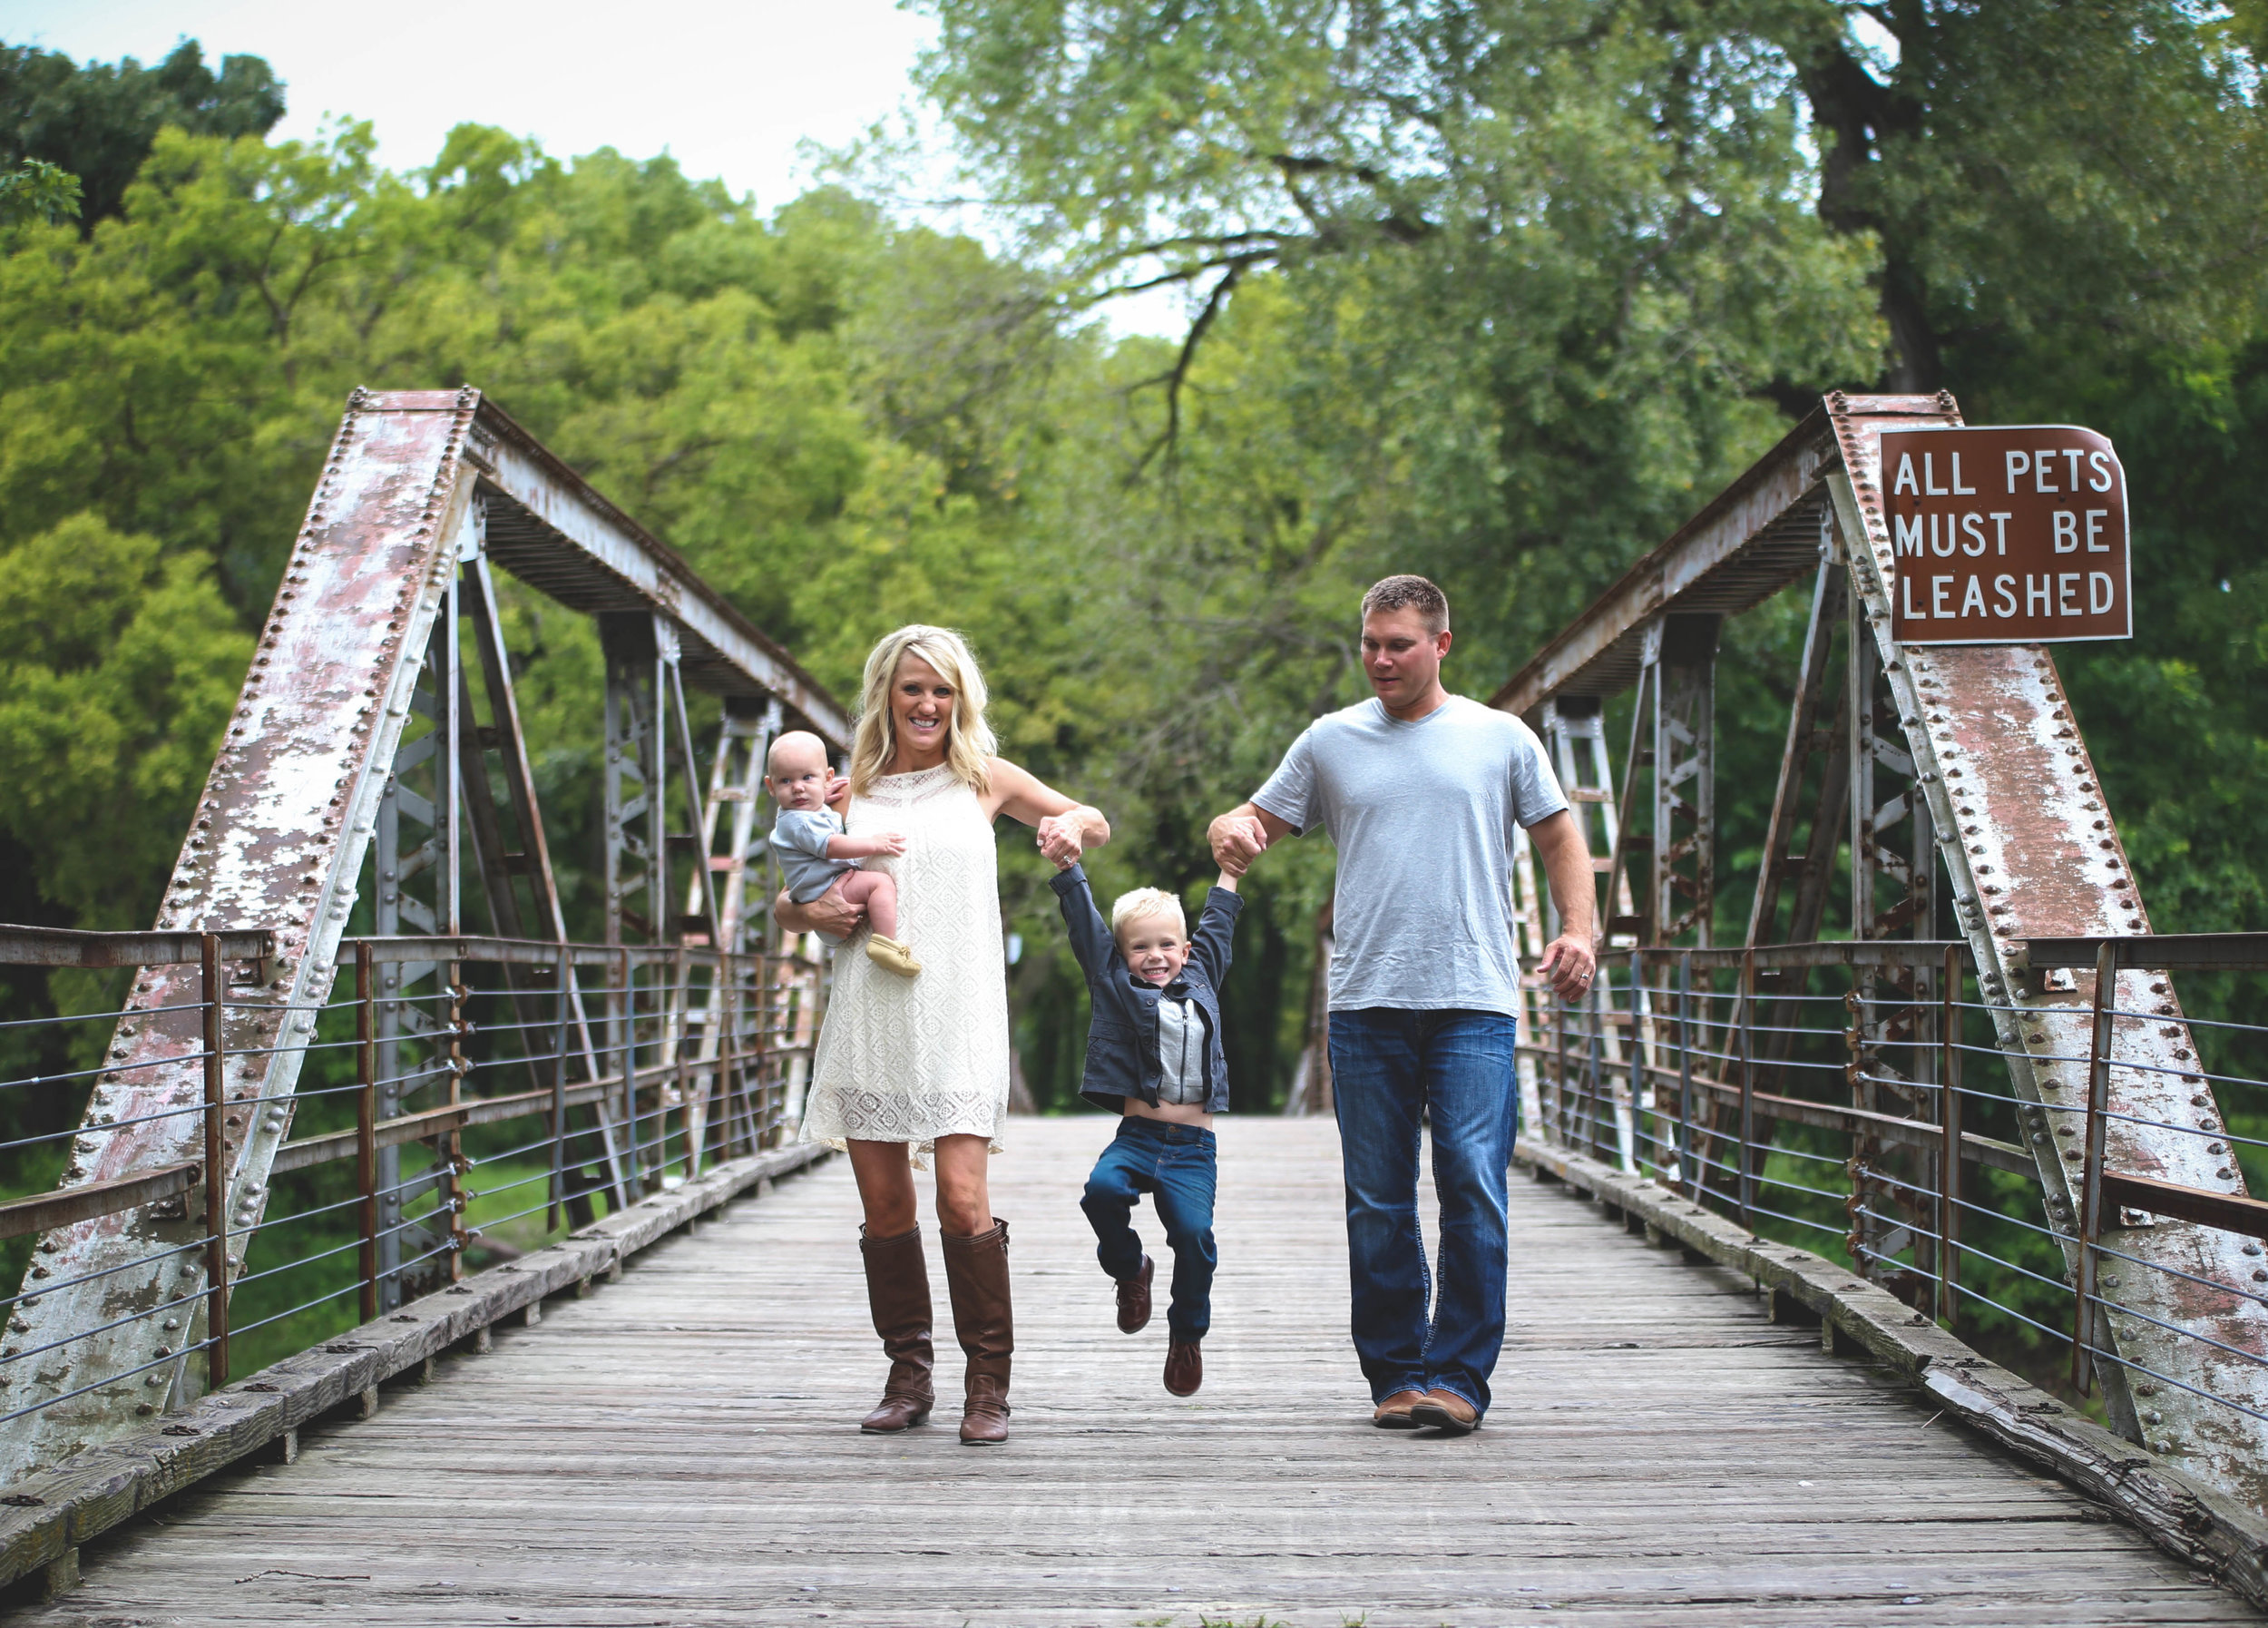 Family - $250 - 2 hour session includes studio and 1 other location, 20 to 40 digital images